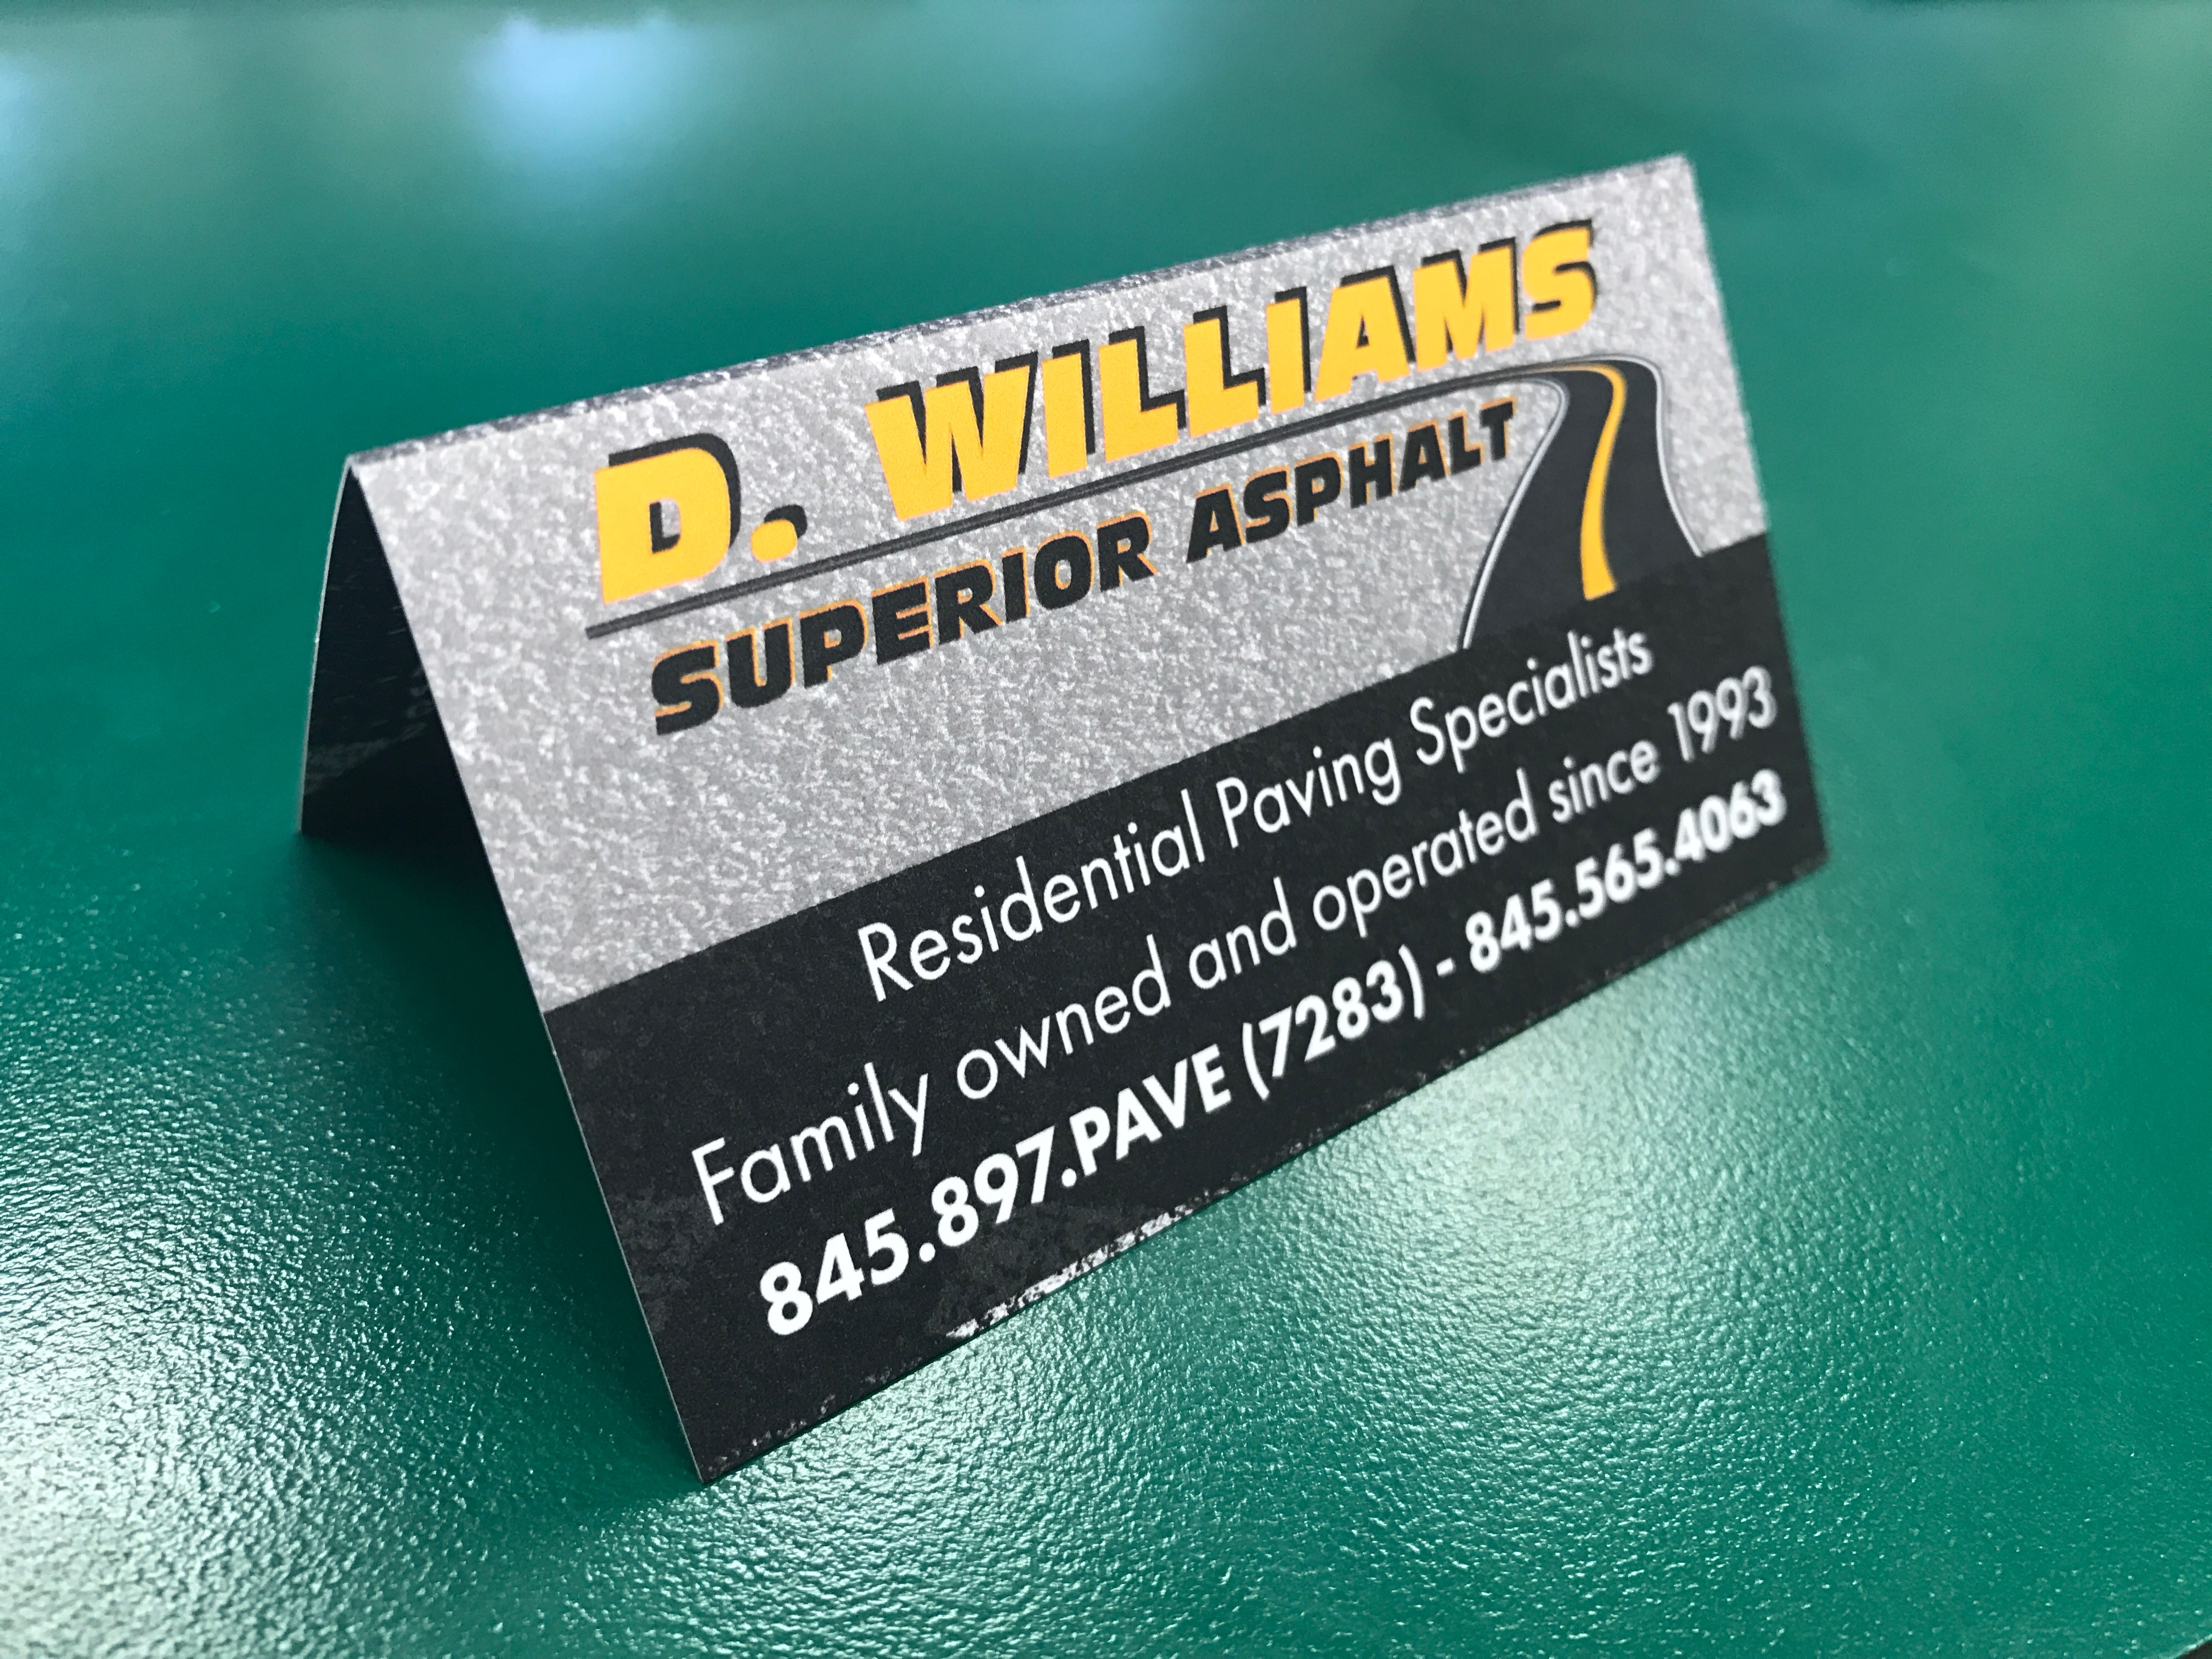 D. Williams Asphalt